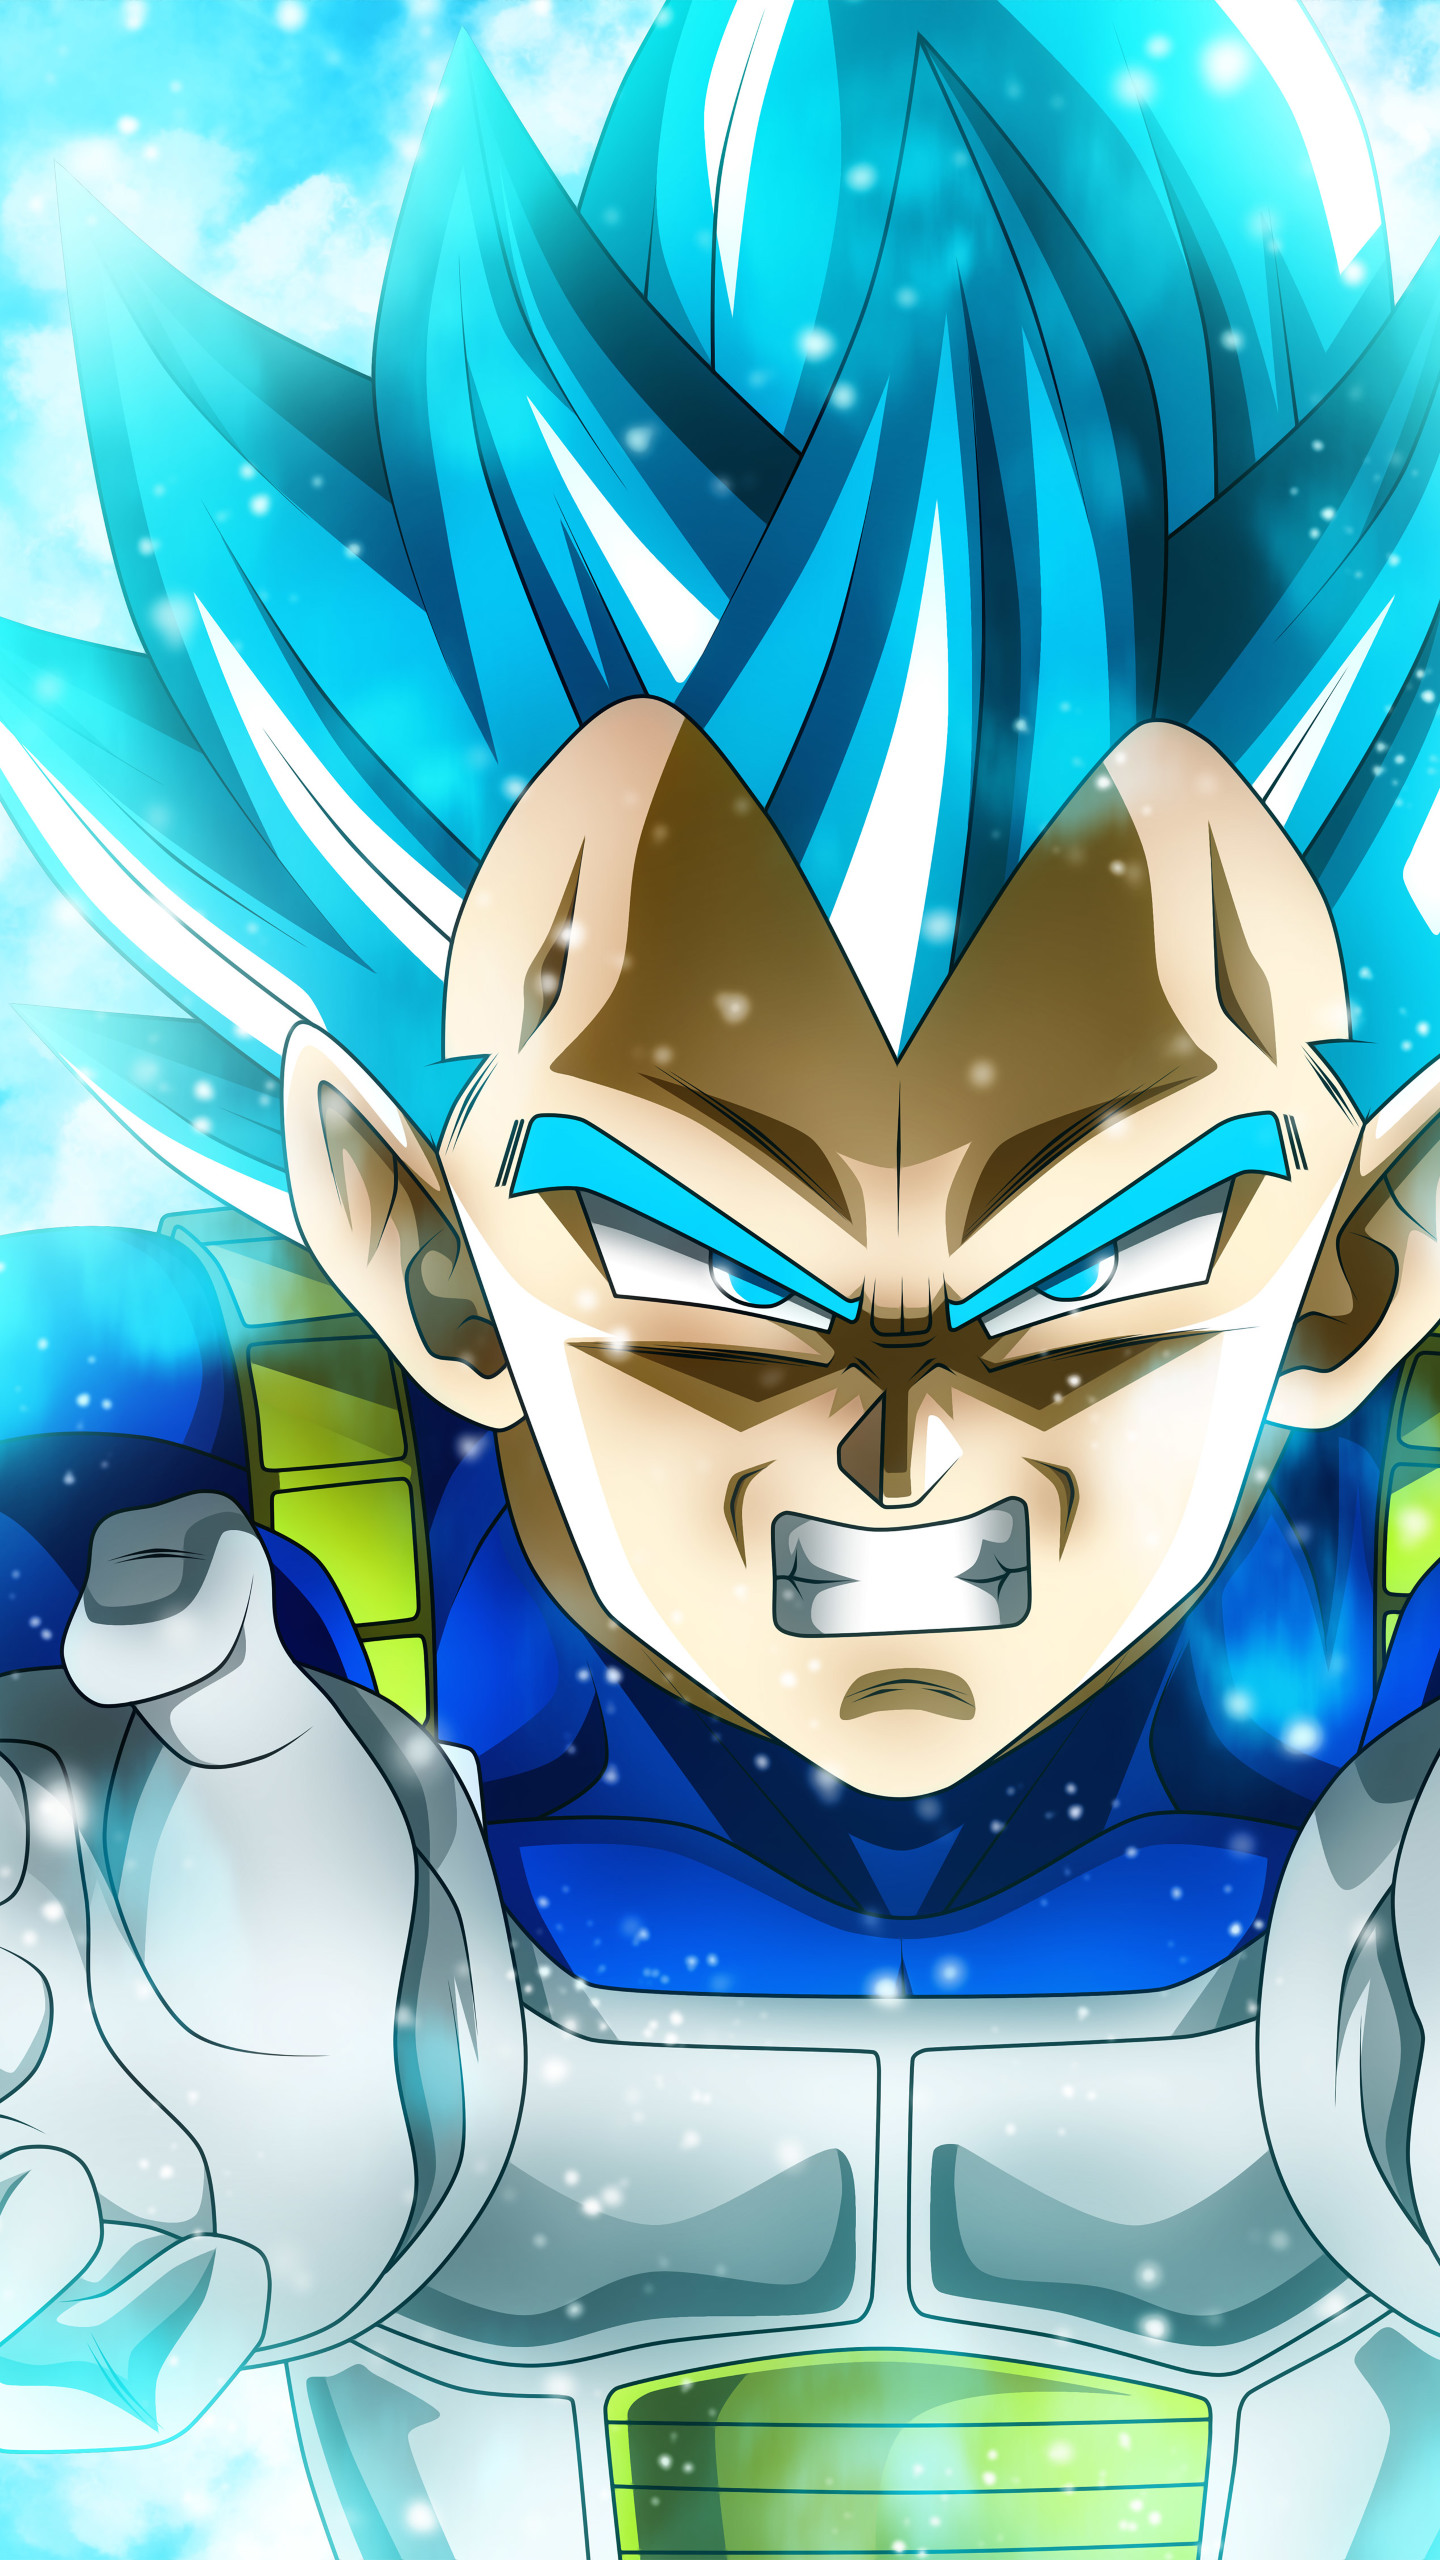 Dragon ball super hd 8k wallpaper - Vegeta wallpapers for mobile ...